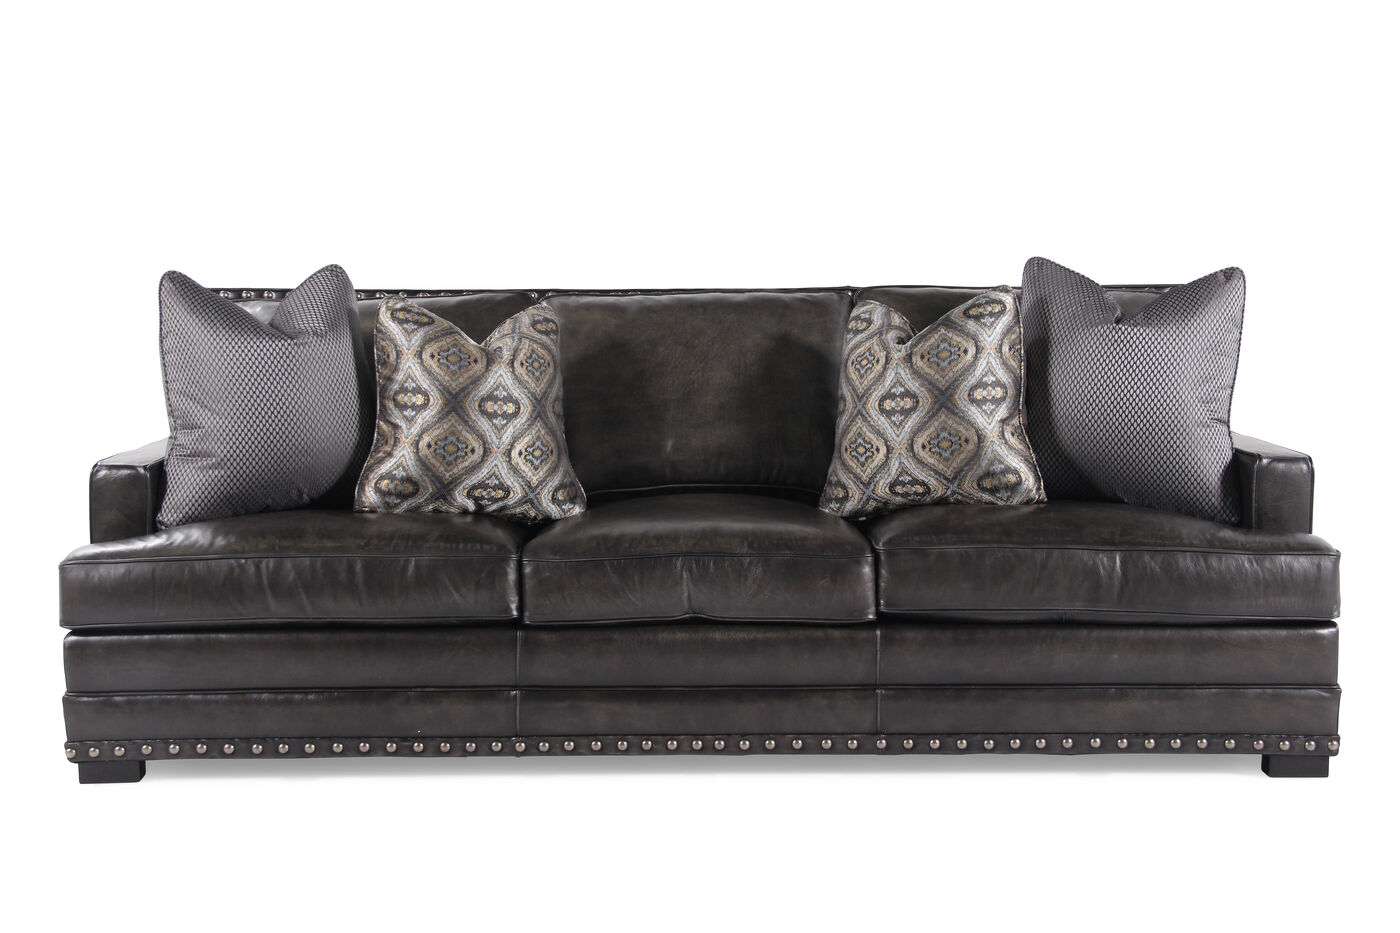 Bernhardt Living Room Furniture. Nailhead Accented Leather 94 quot  Sofa in Graphite Mathis Brothers